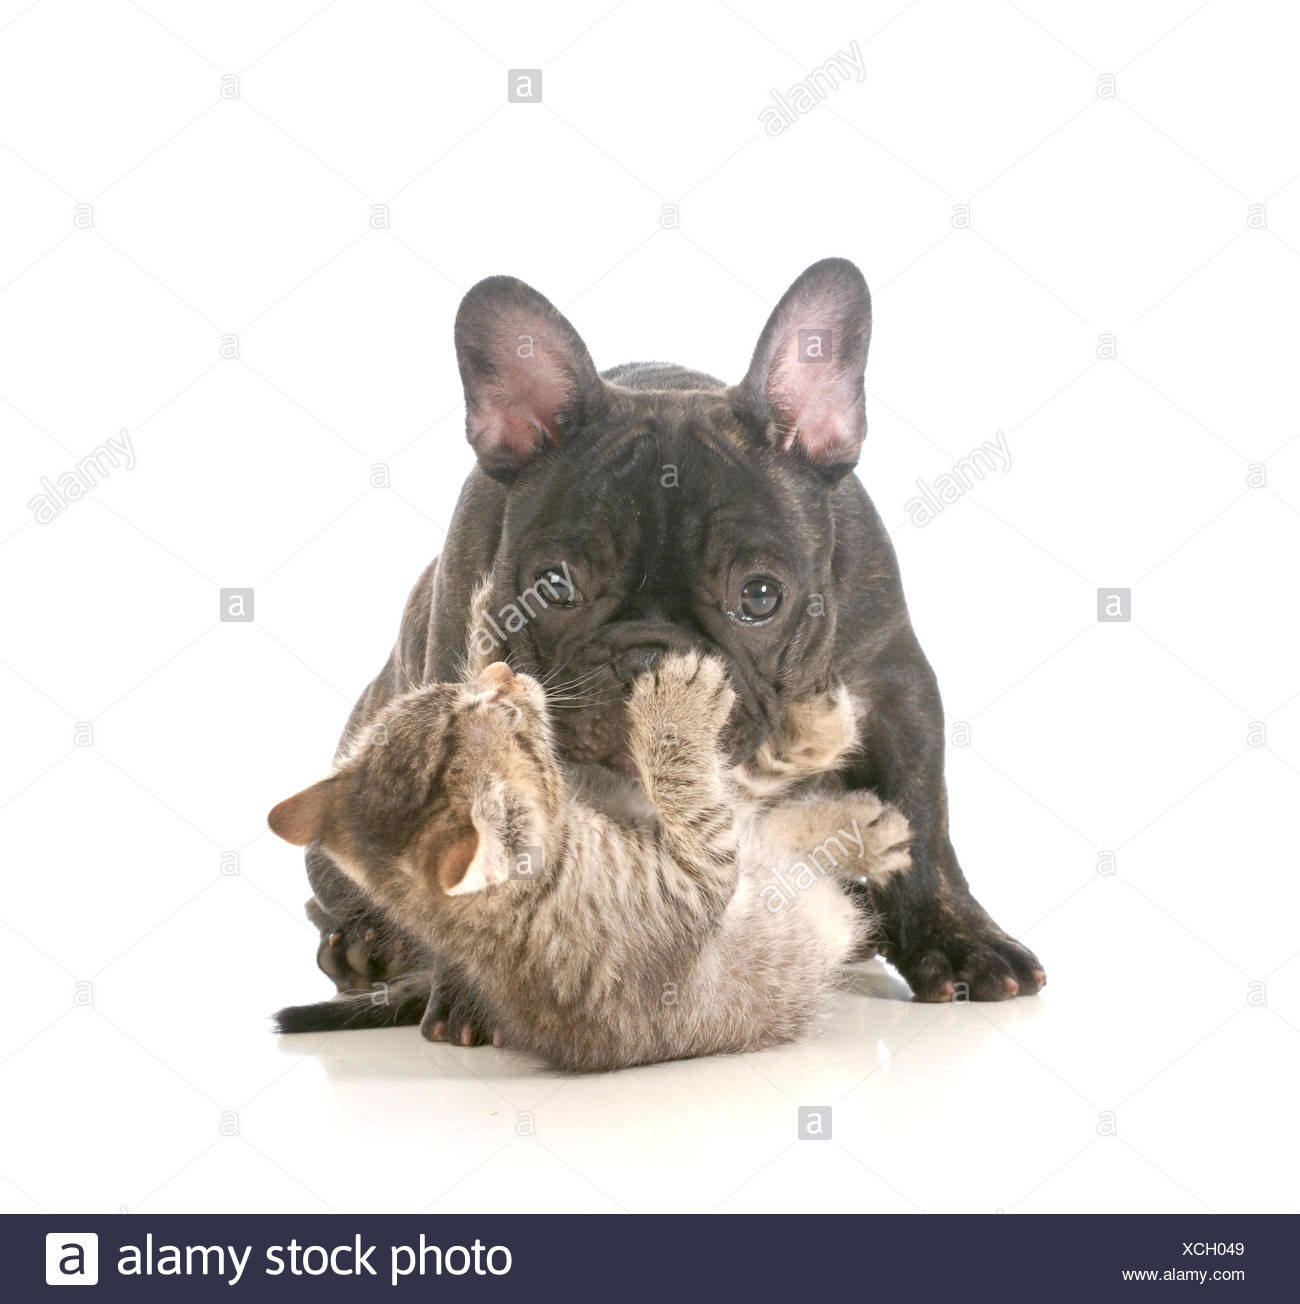 puppy and kitten playing - french bulldog puppy being attacked by a young playful kitten isolated on white background Stock Photo